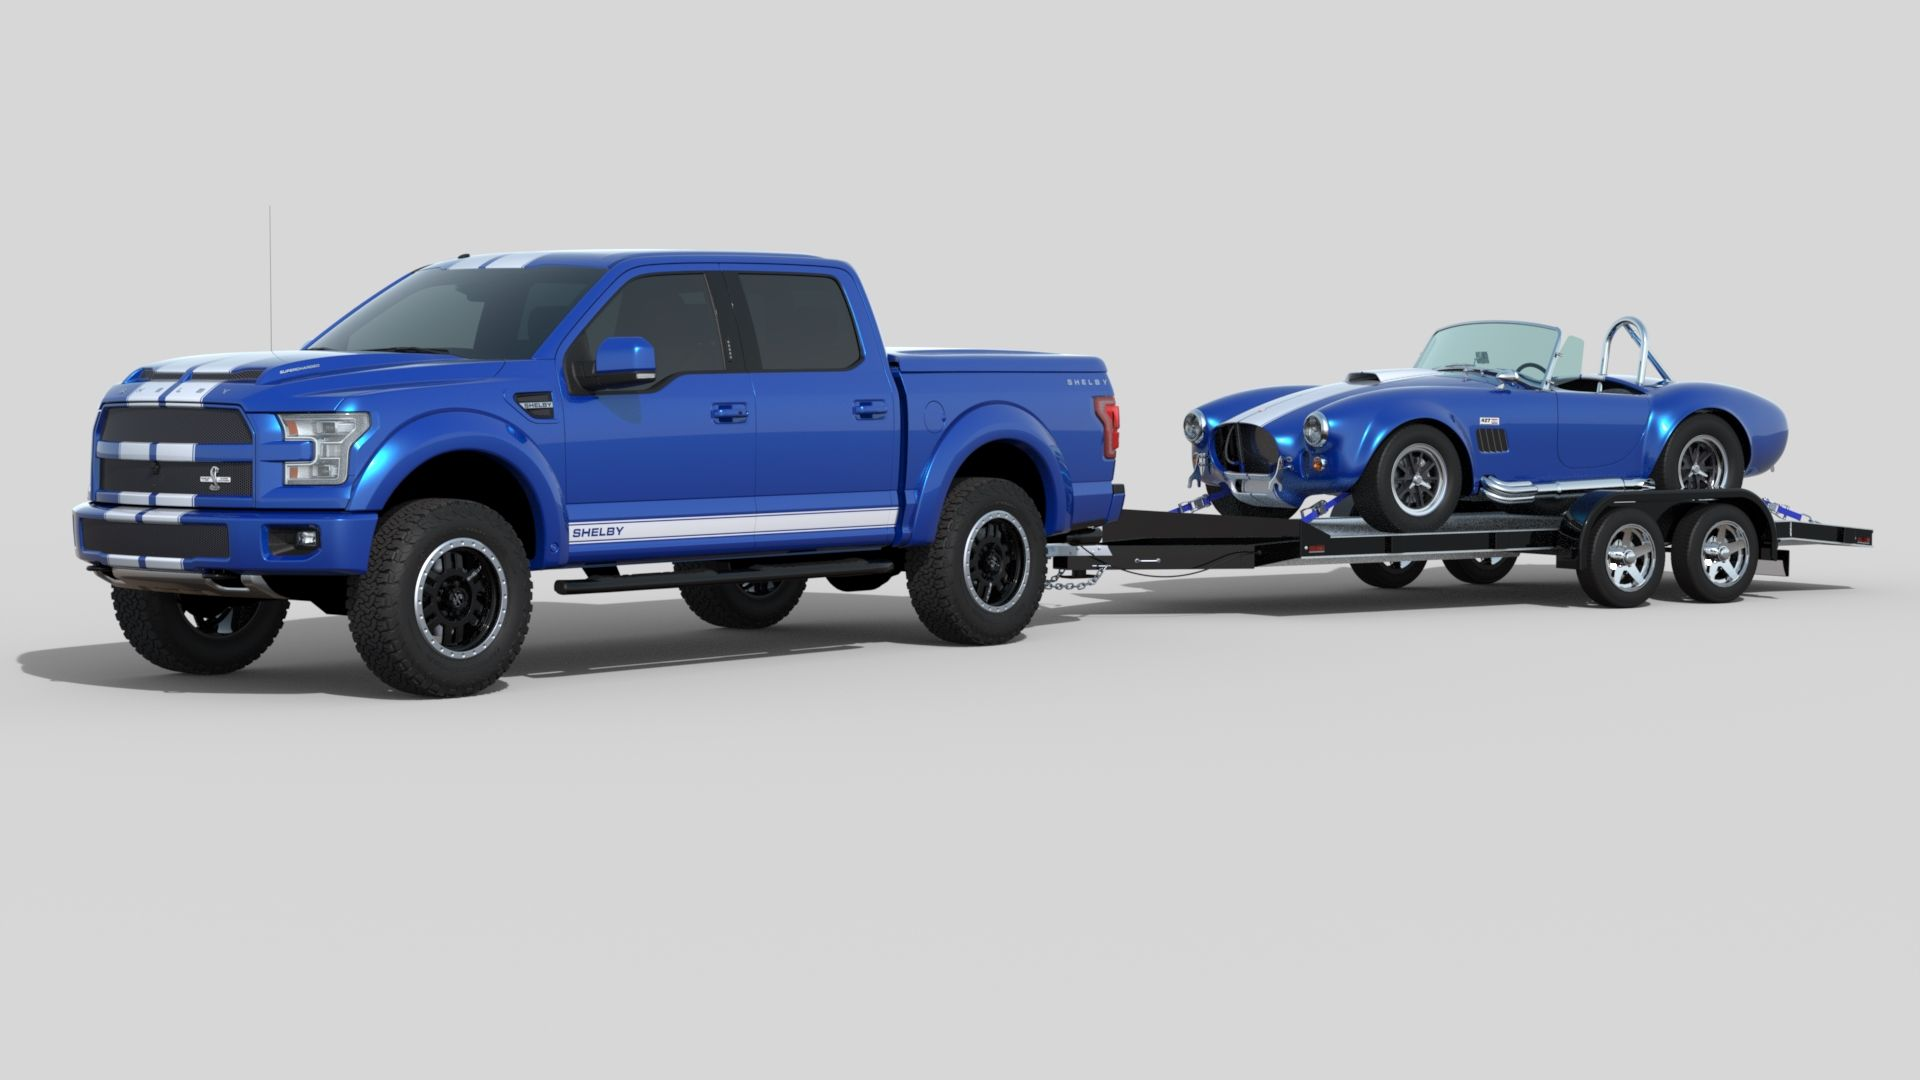 2016 Shelby F 150 Ziems Ford Corners In Nm Shelby Dream Cars Ford Pickup